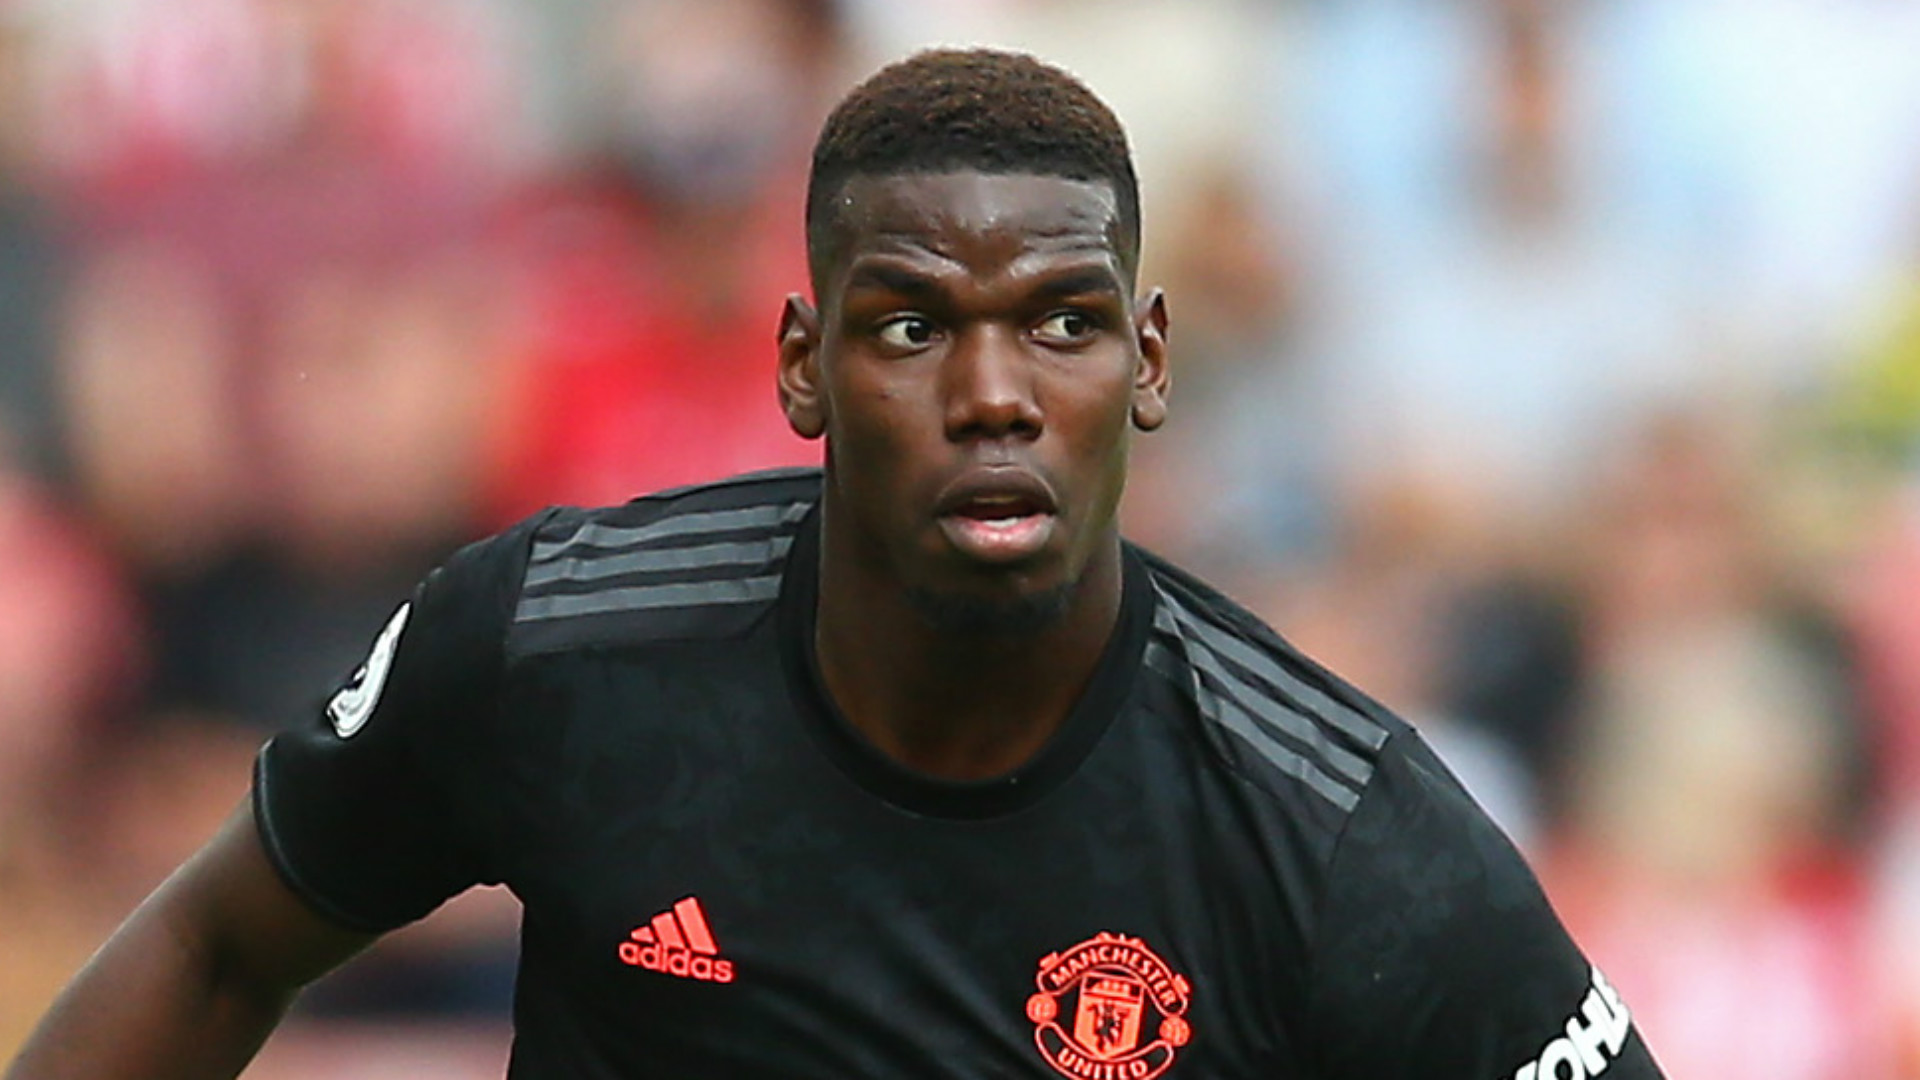 'It is the worst' - Pogba opens up on injury woes at Man Utd and offers recovery update